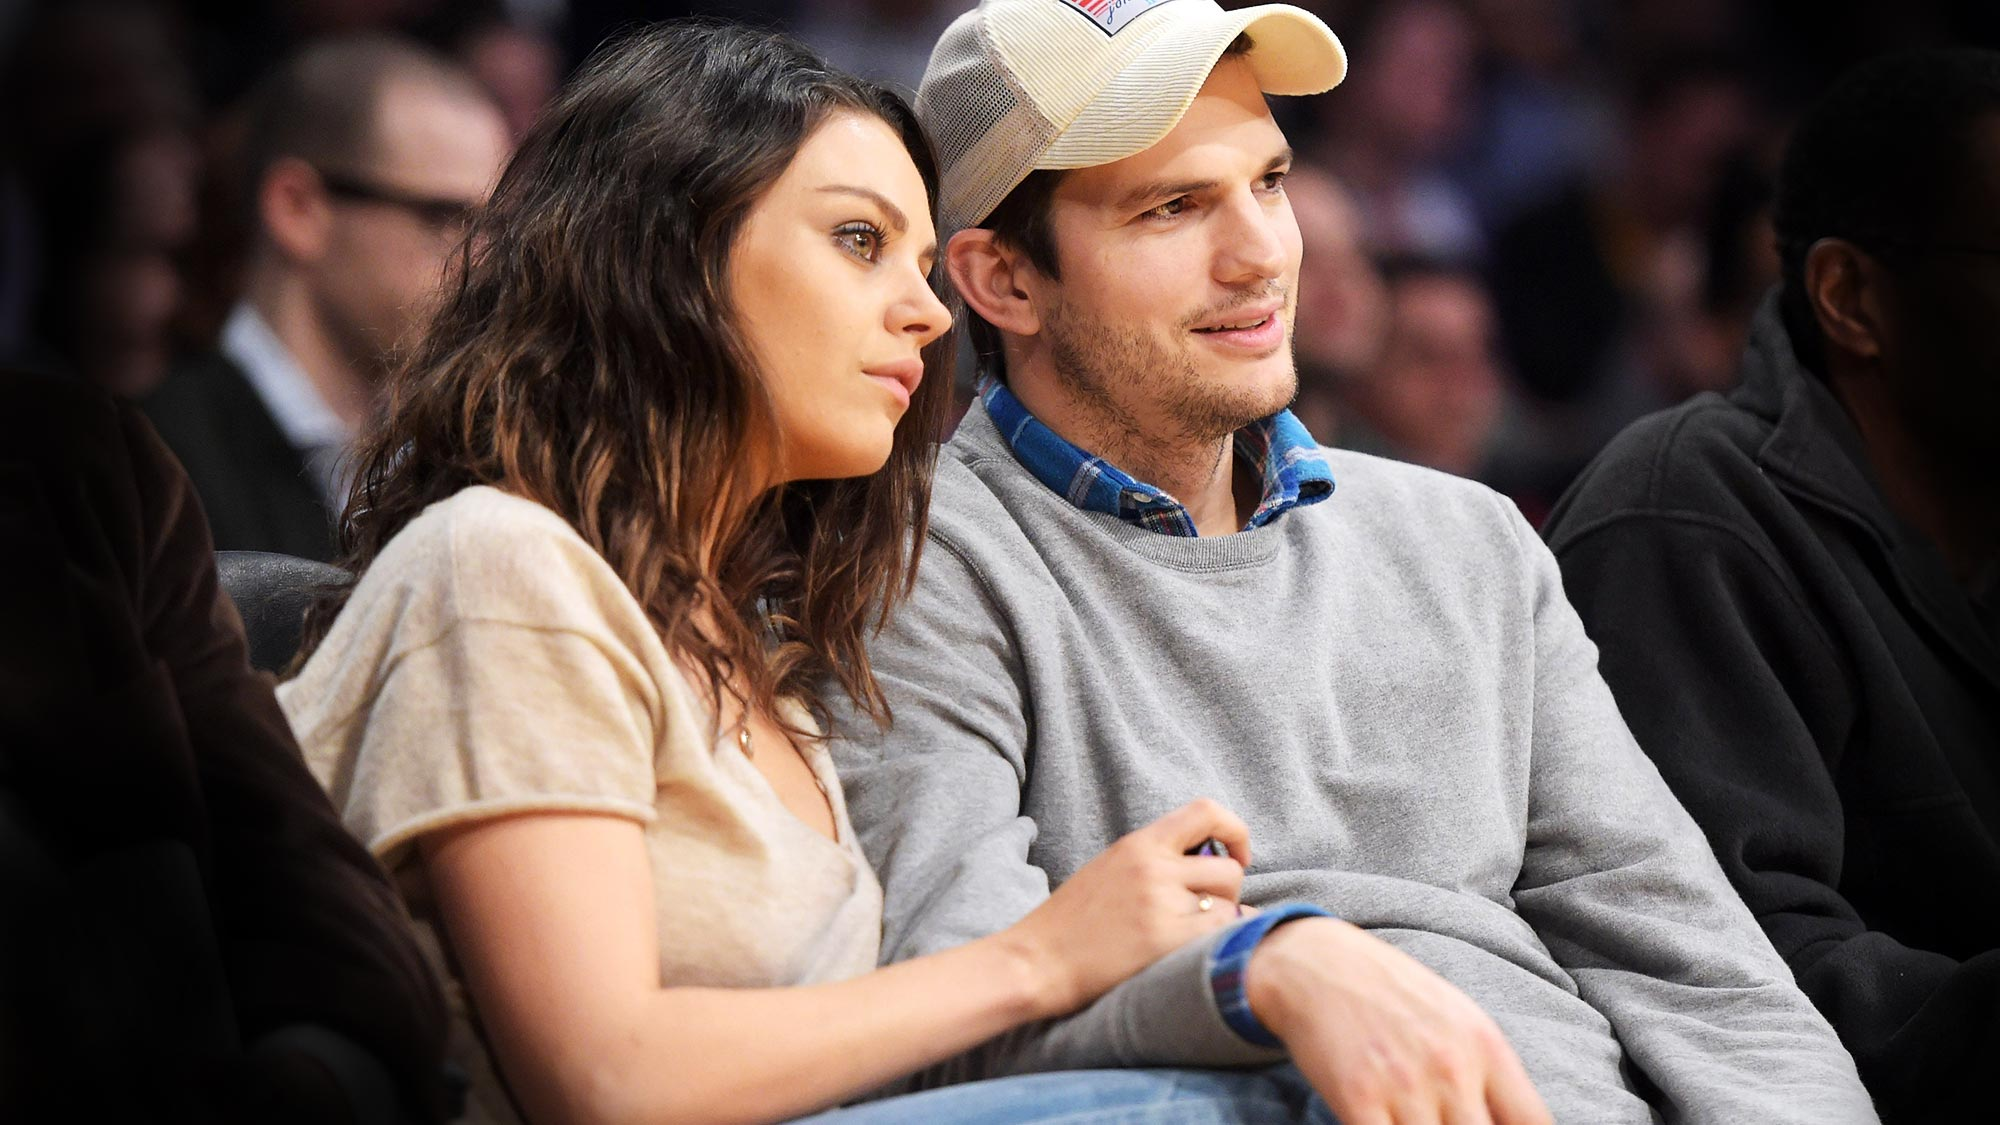 Mila Kunis, Ashton Kutcher Rumors: Couple Fighting over Money Issues and Wrong Investments